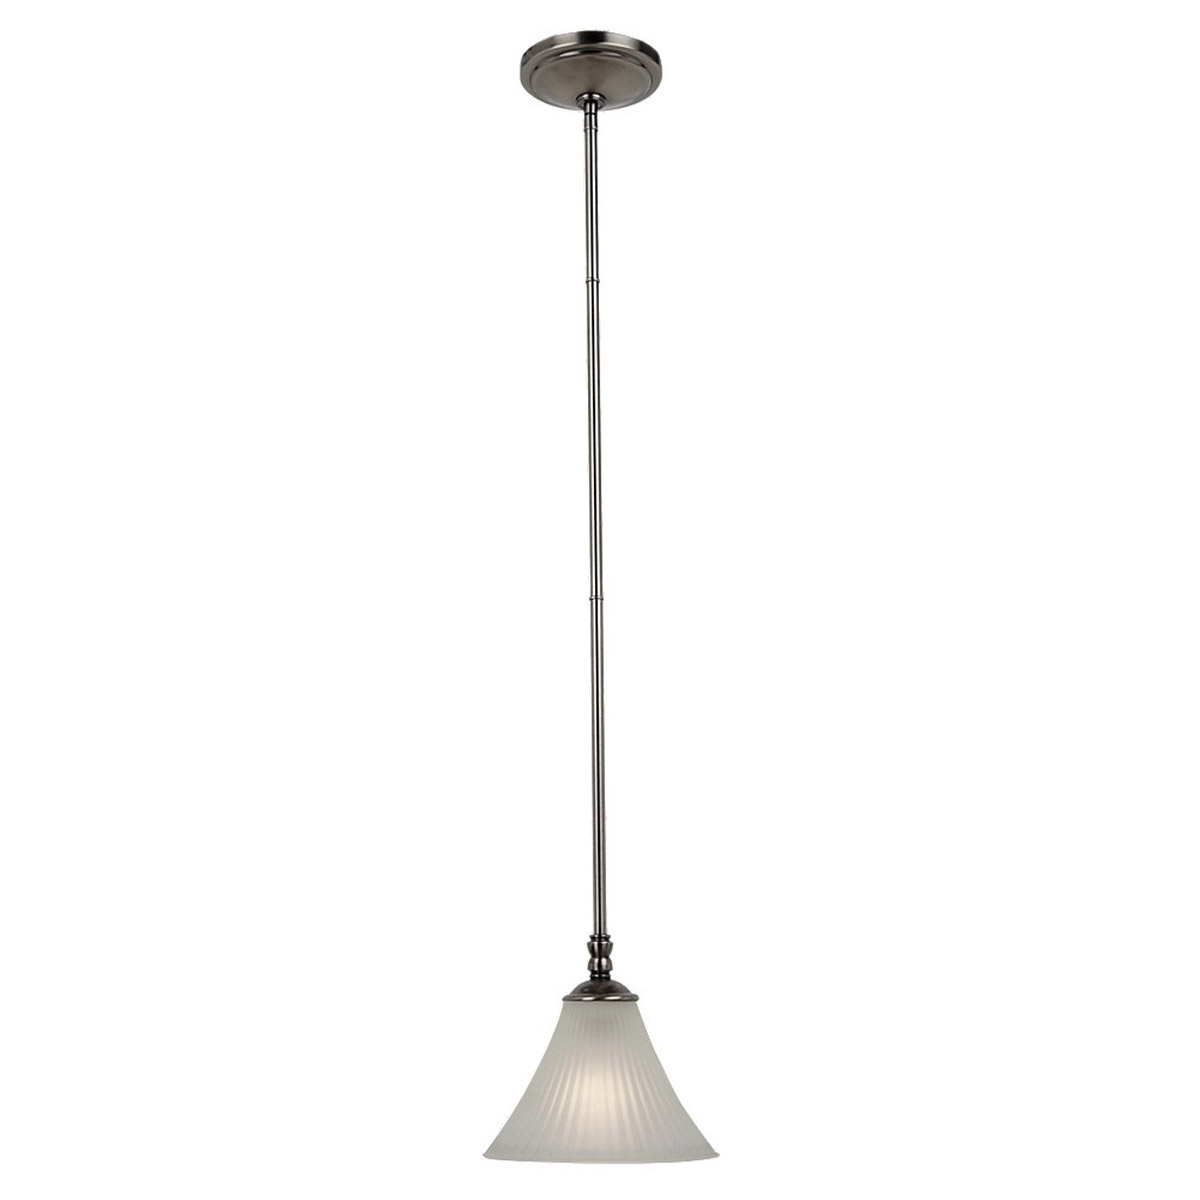 Sea Gull Lighting Joliet 1 Light Mini Pendant in Antique Brushed Nickel 61935-965